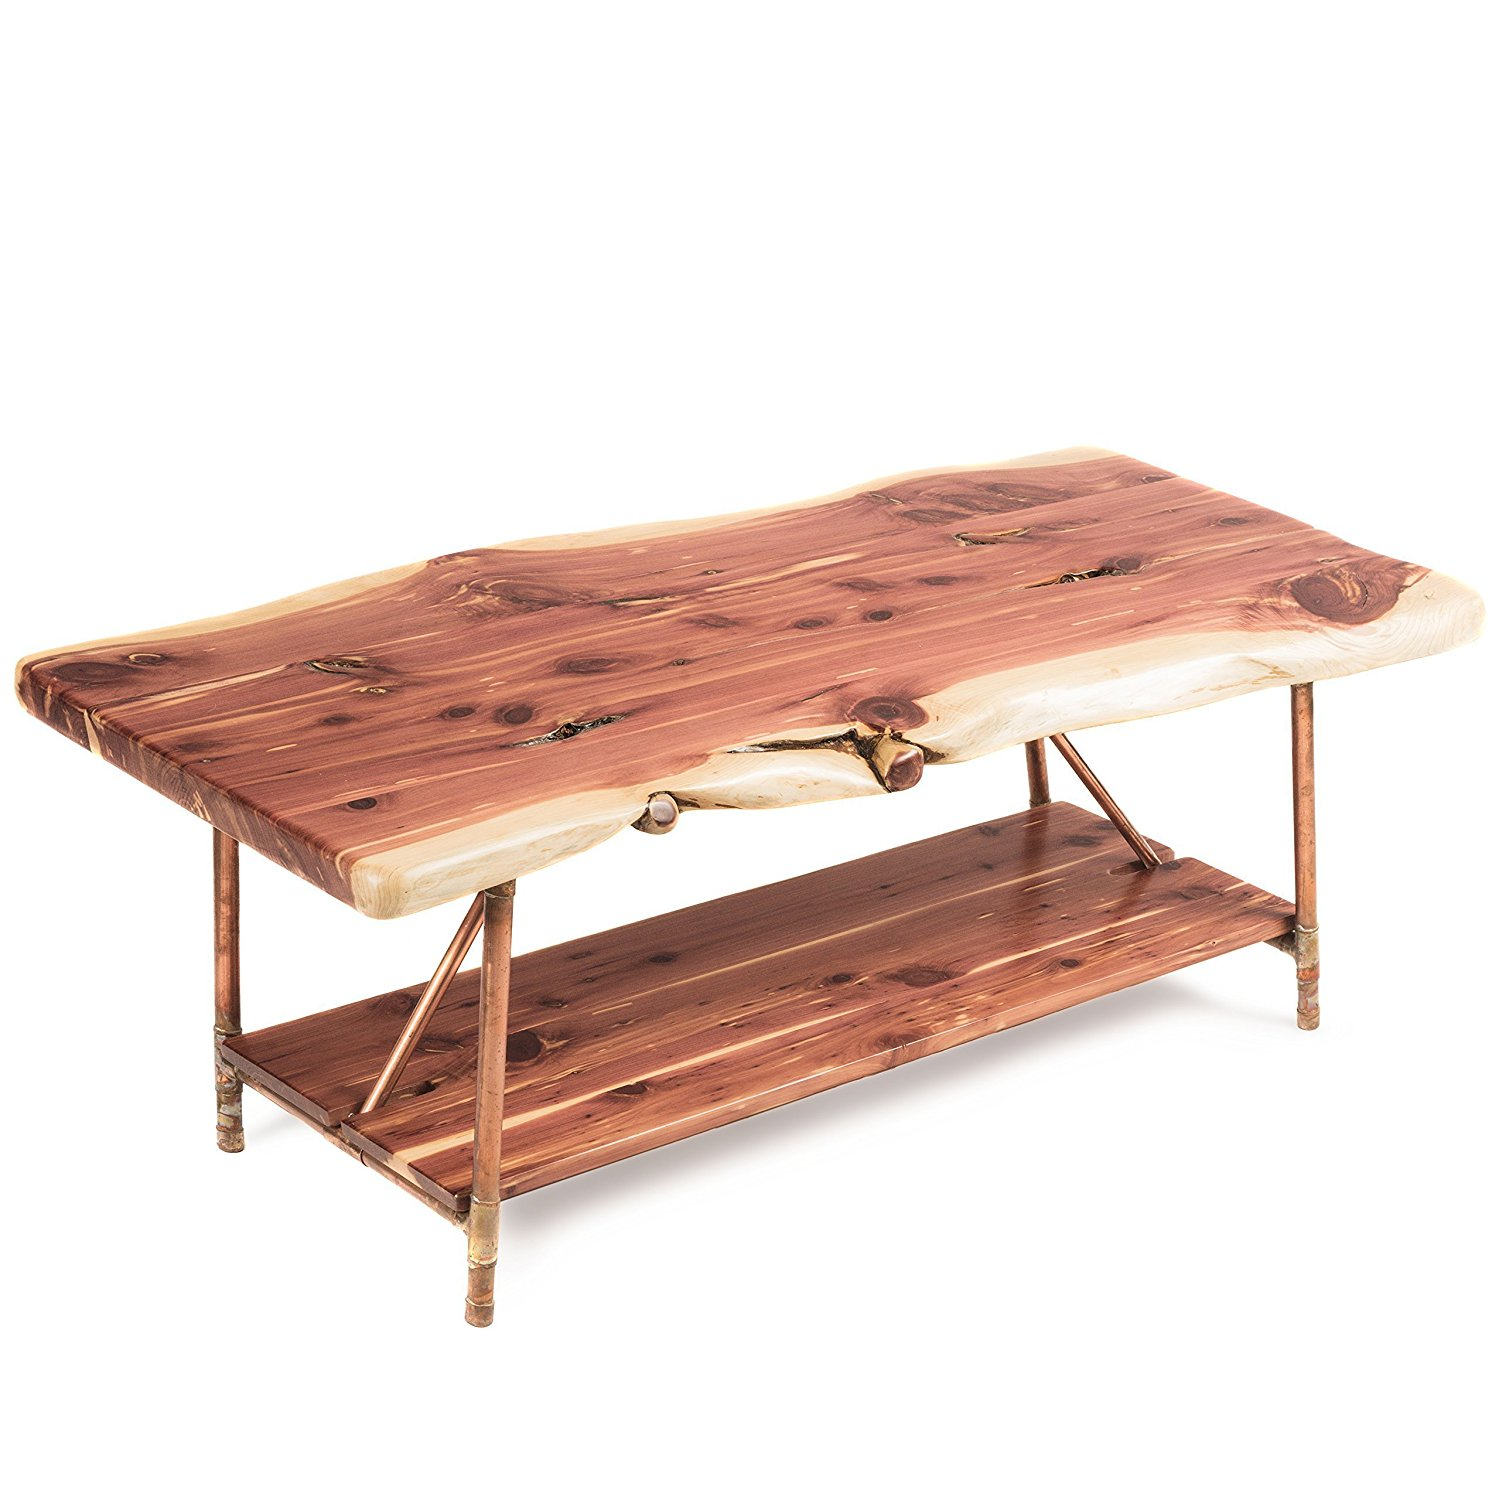 "Niangua Furniture Live Edge Cedar Rustic Coffee Table with Copper Pipe Legs - 48"" x 23"""